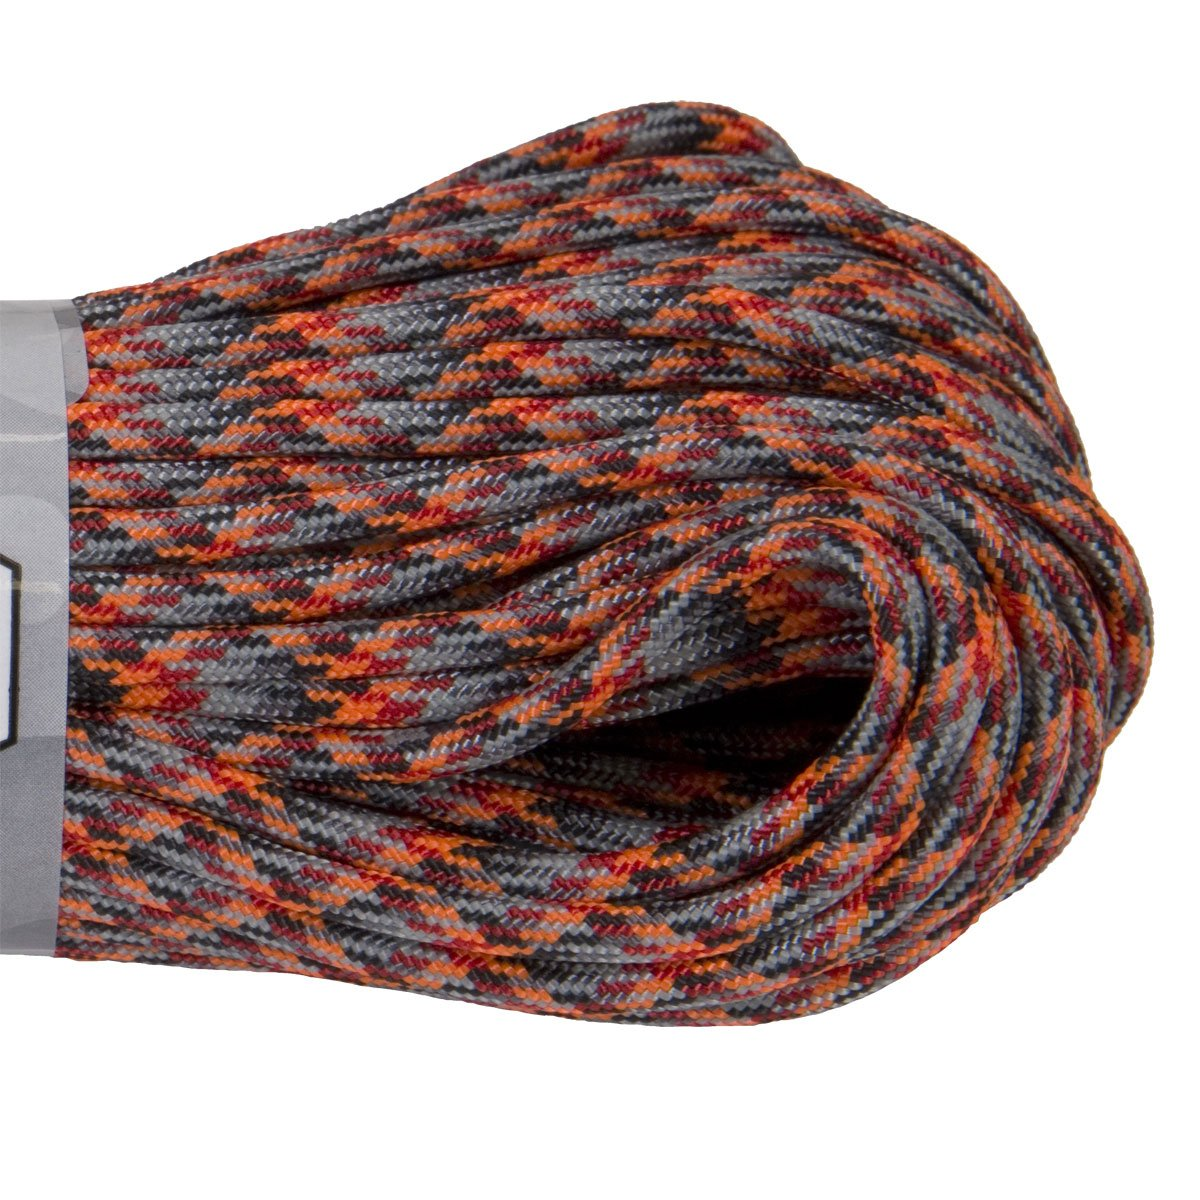 Atwood 550 Paracord - Lava